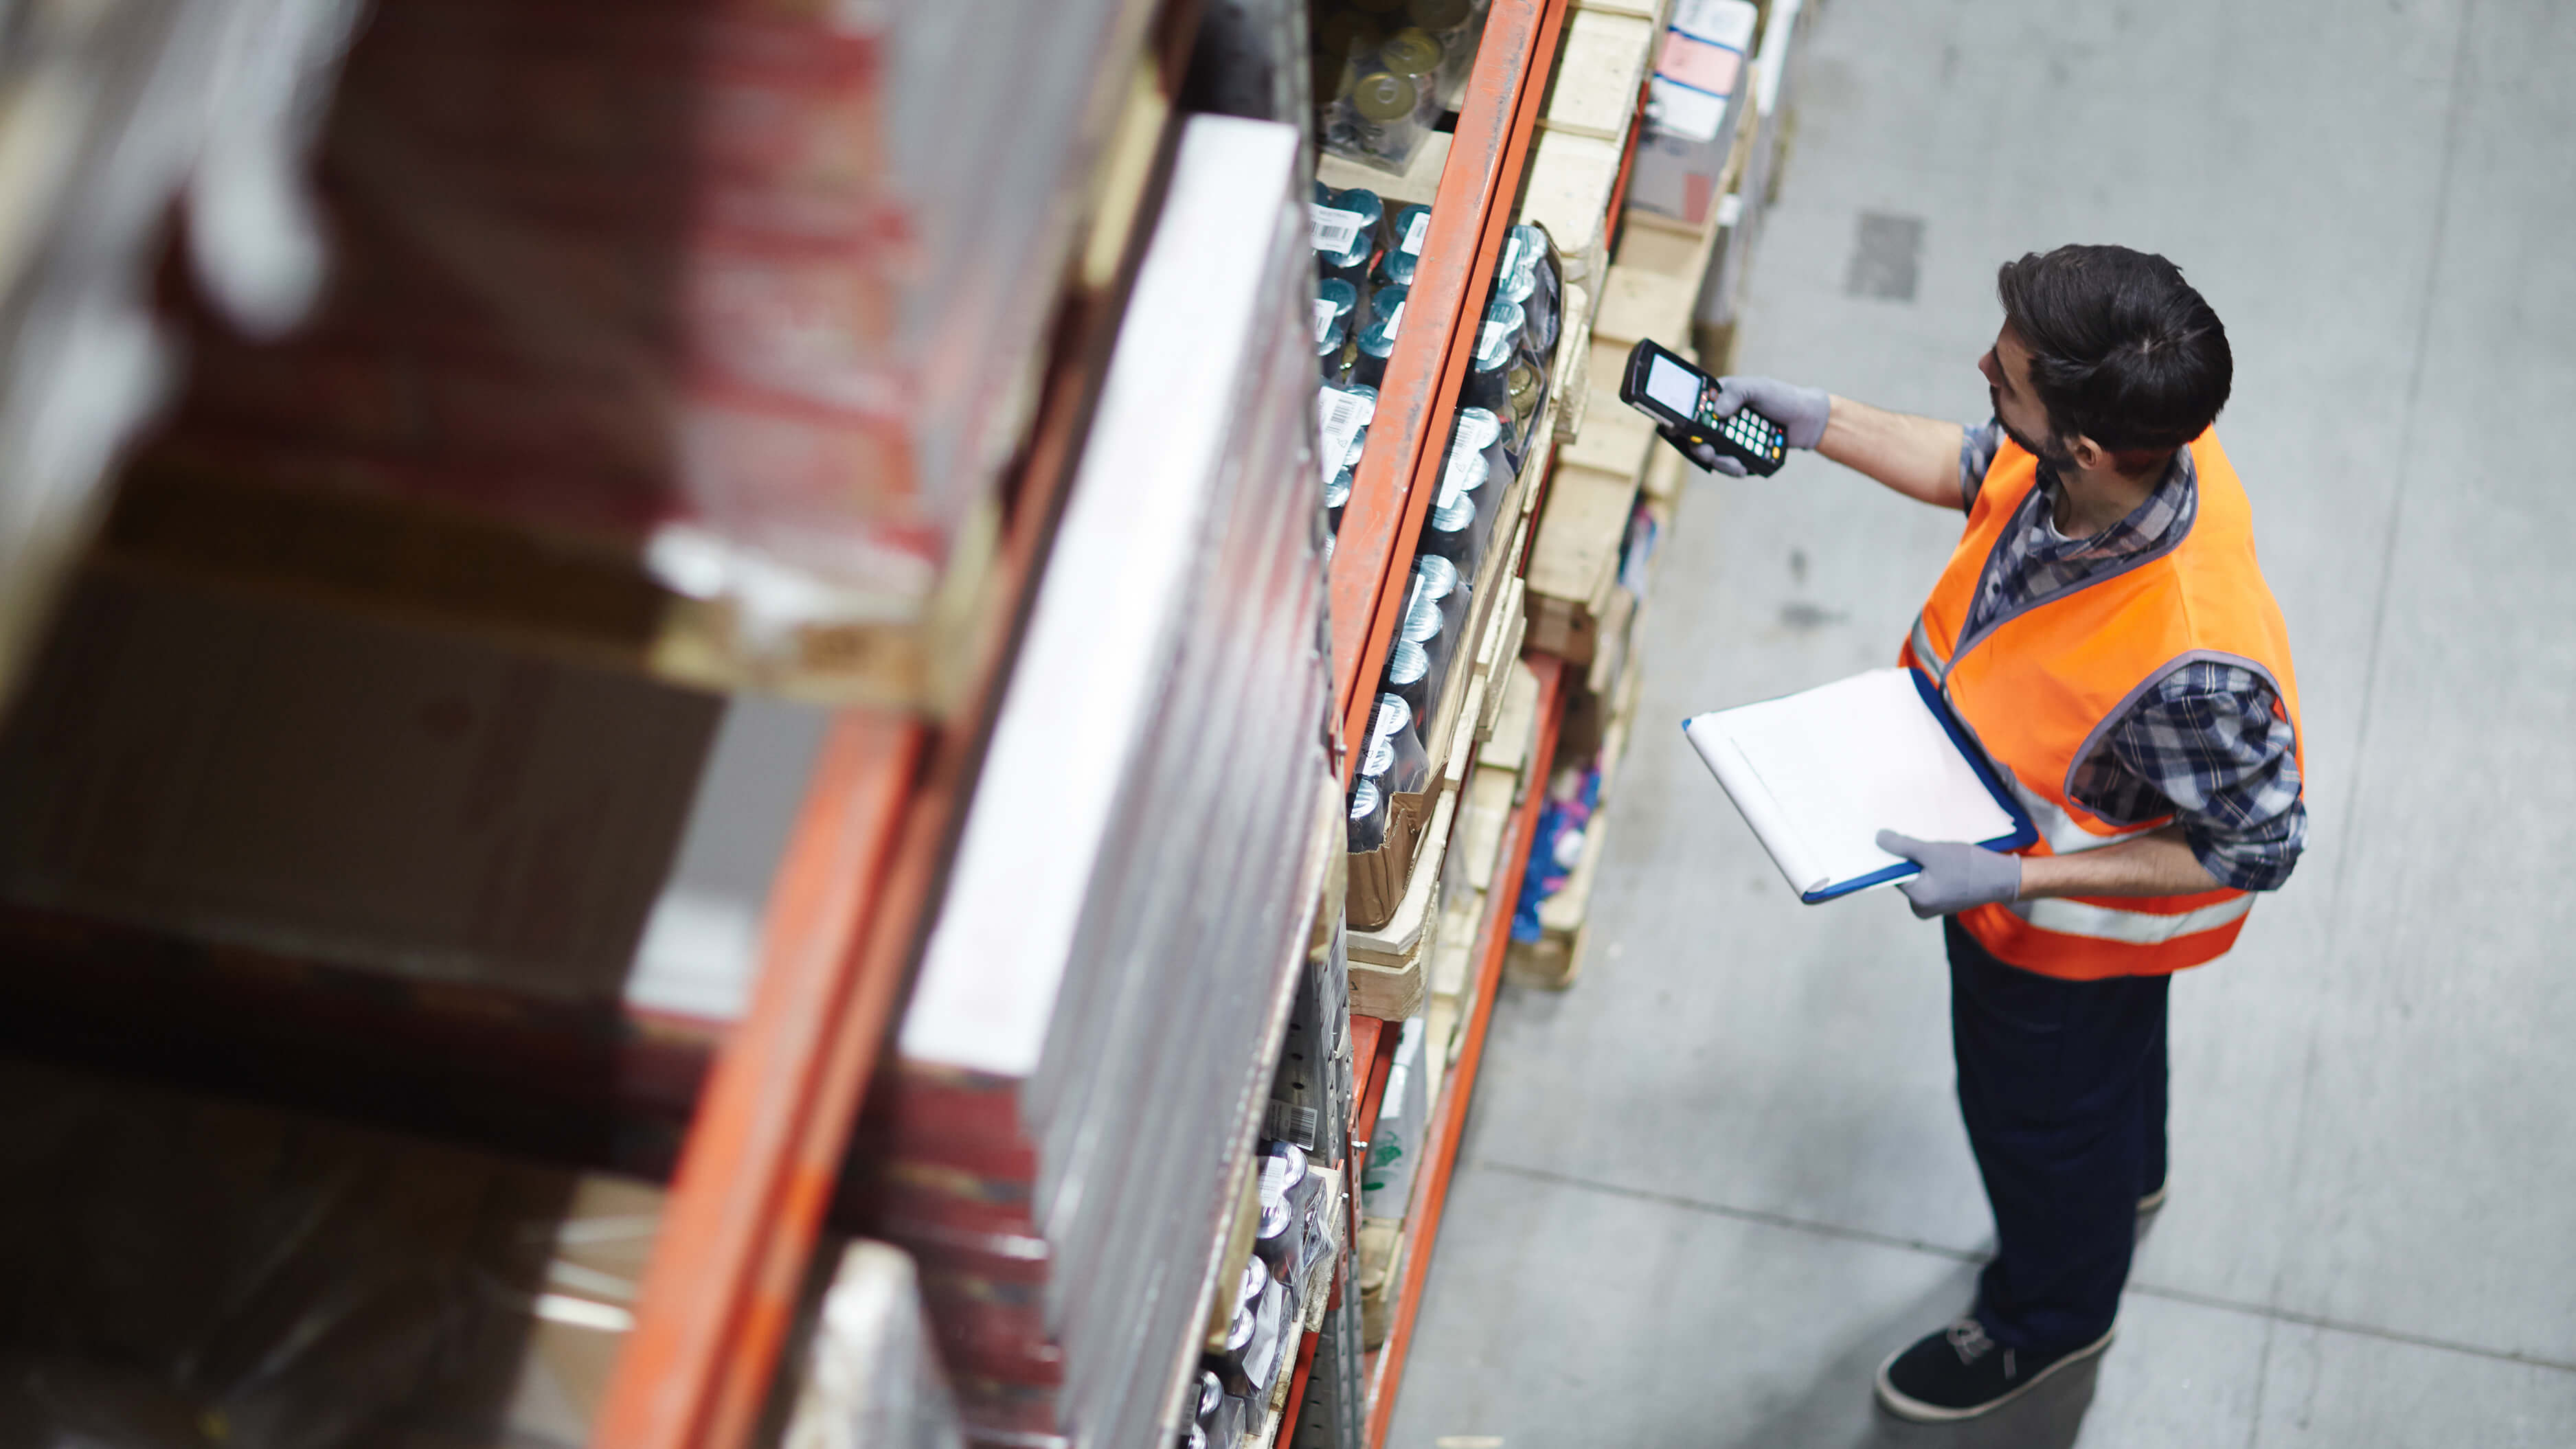 Man-scanning-boxes-in-warehouse